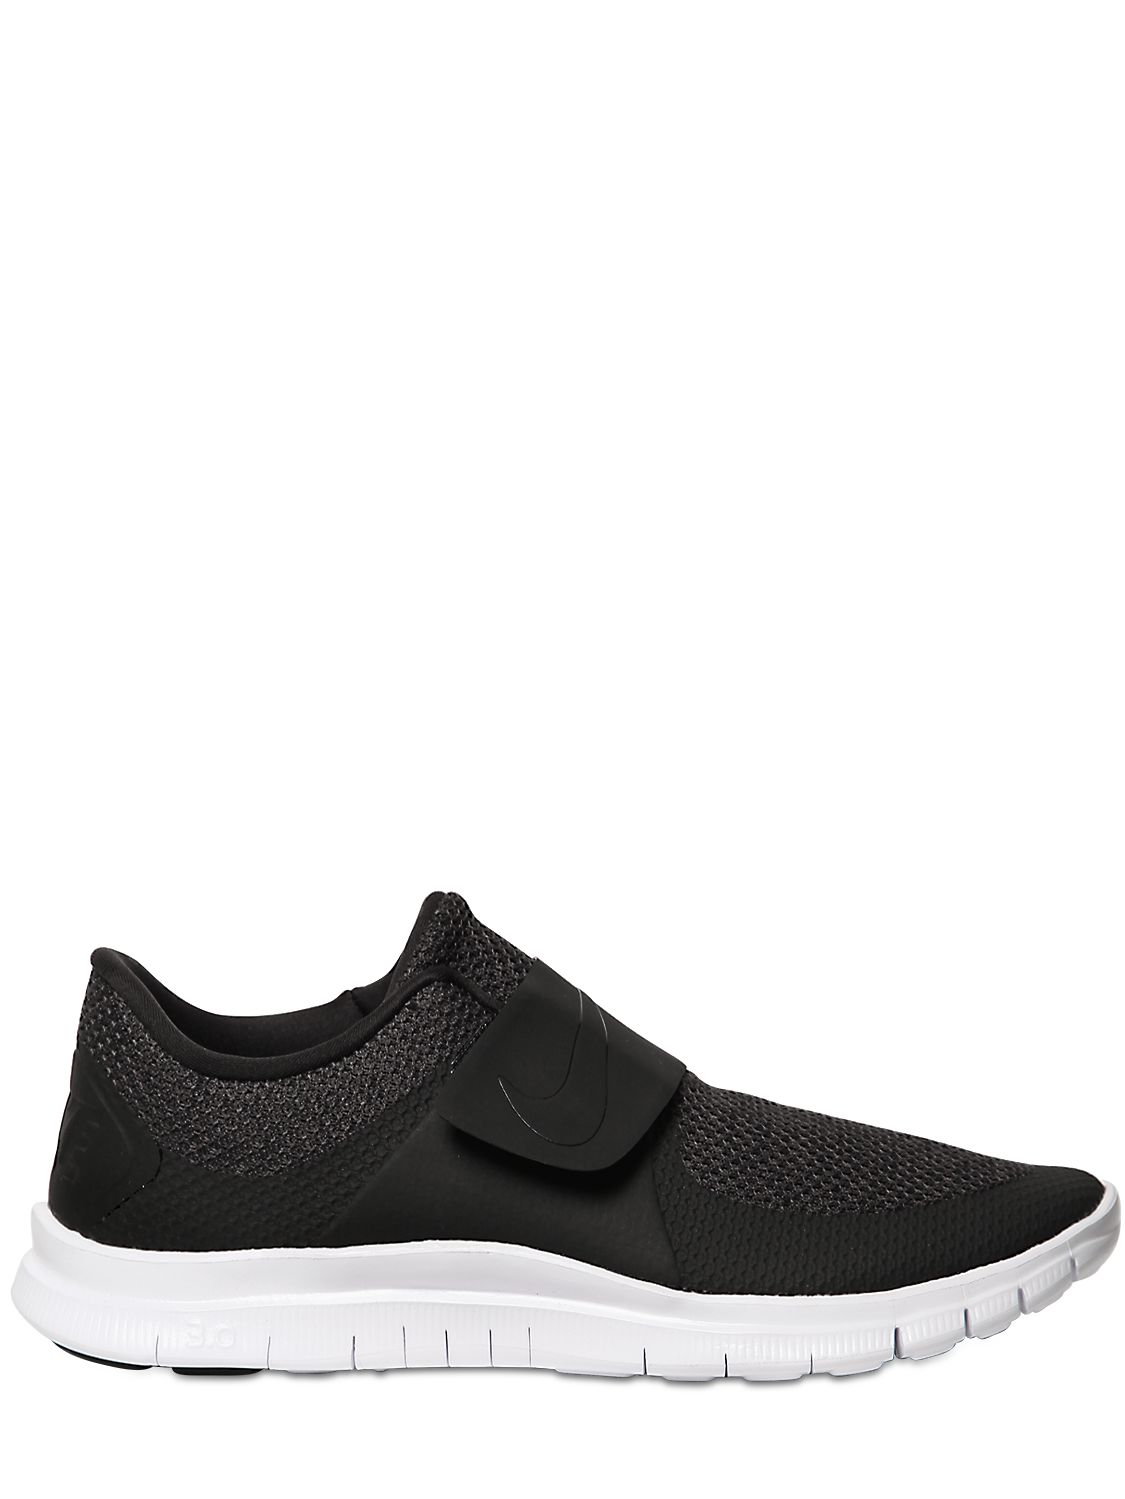 finest selection 9c366 2c53d mens nike free socfly running shoes black